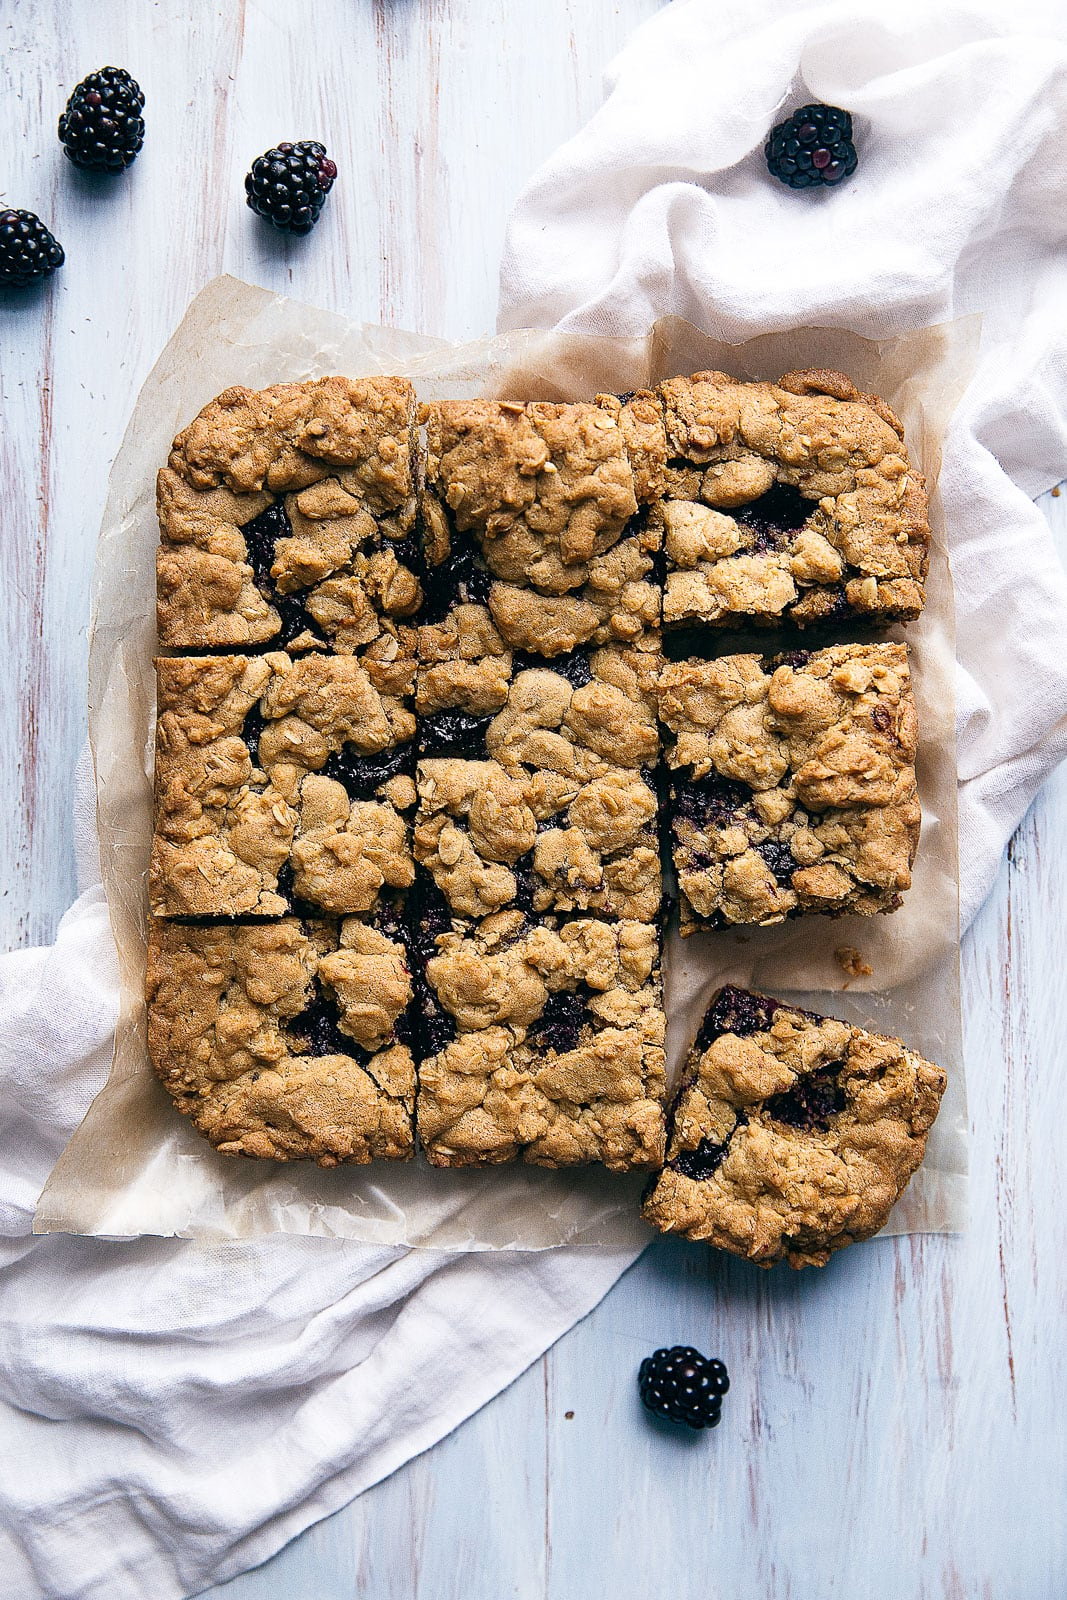 Chewy oatmeal bars with a homemade blackberry jam center and crumble topping